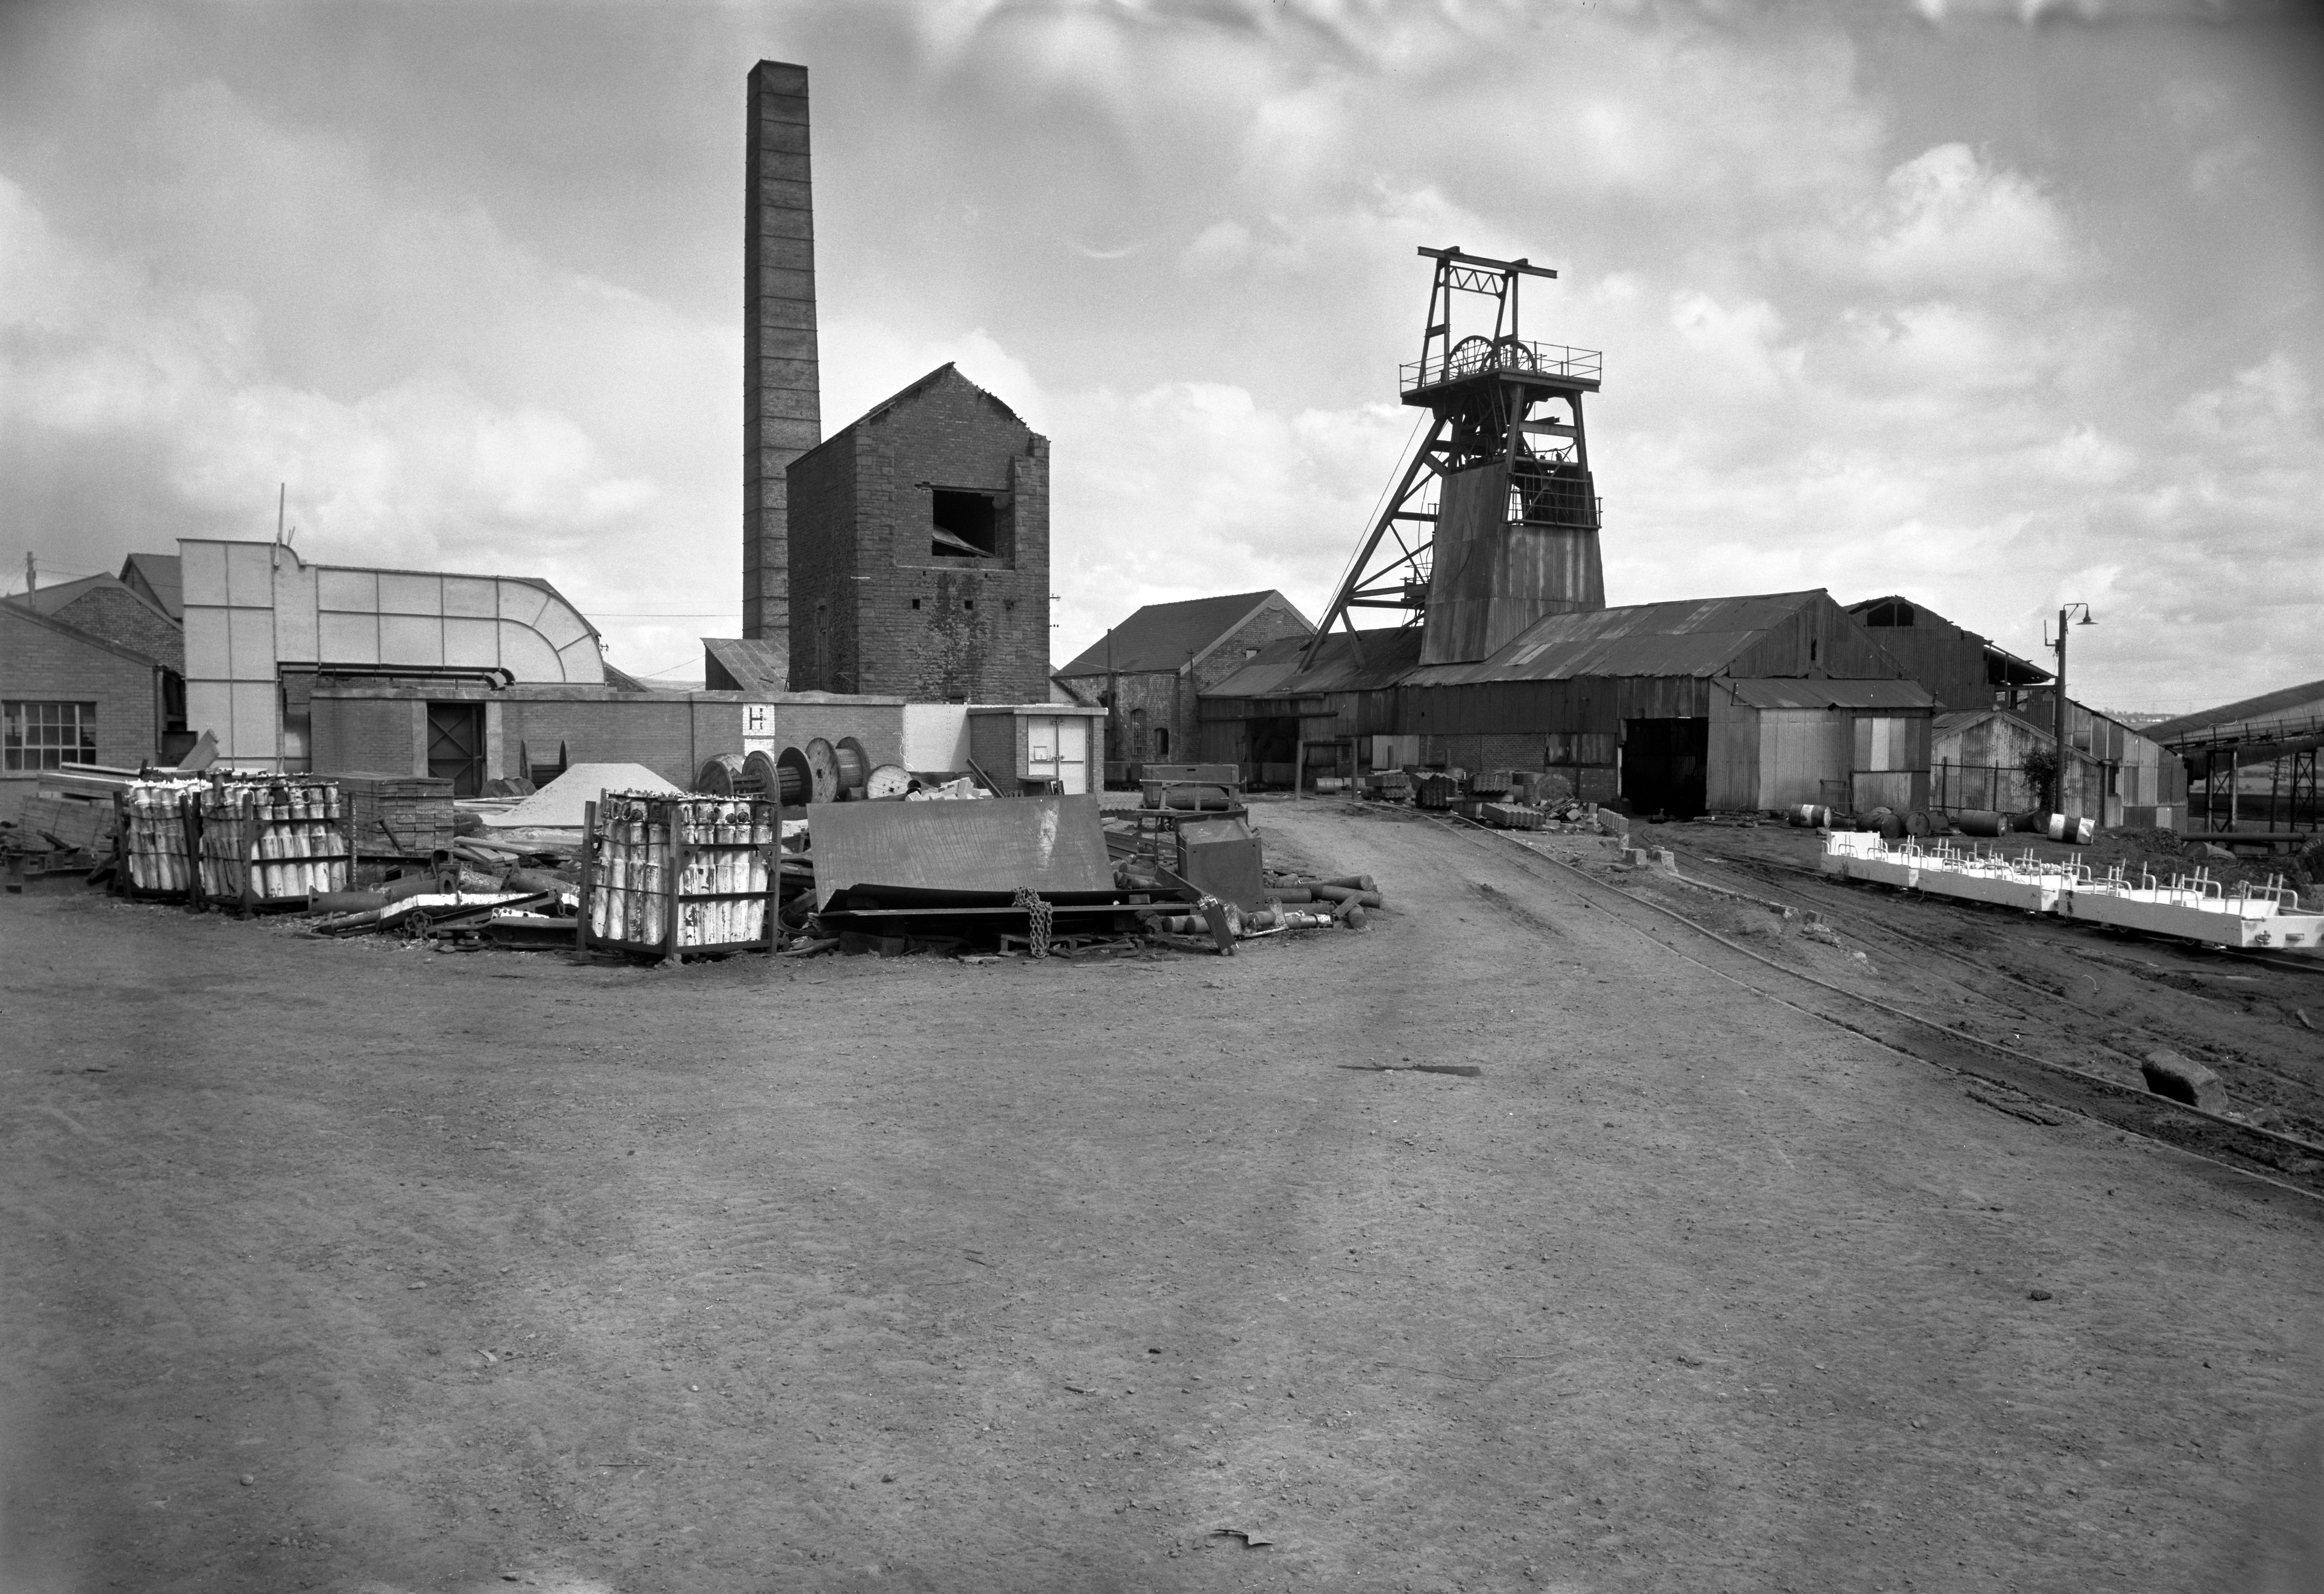 Morlais Colliery, a general view, note the derelict engine pumping house, 1978